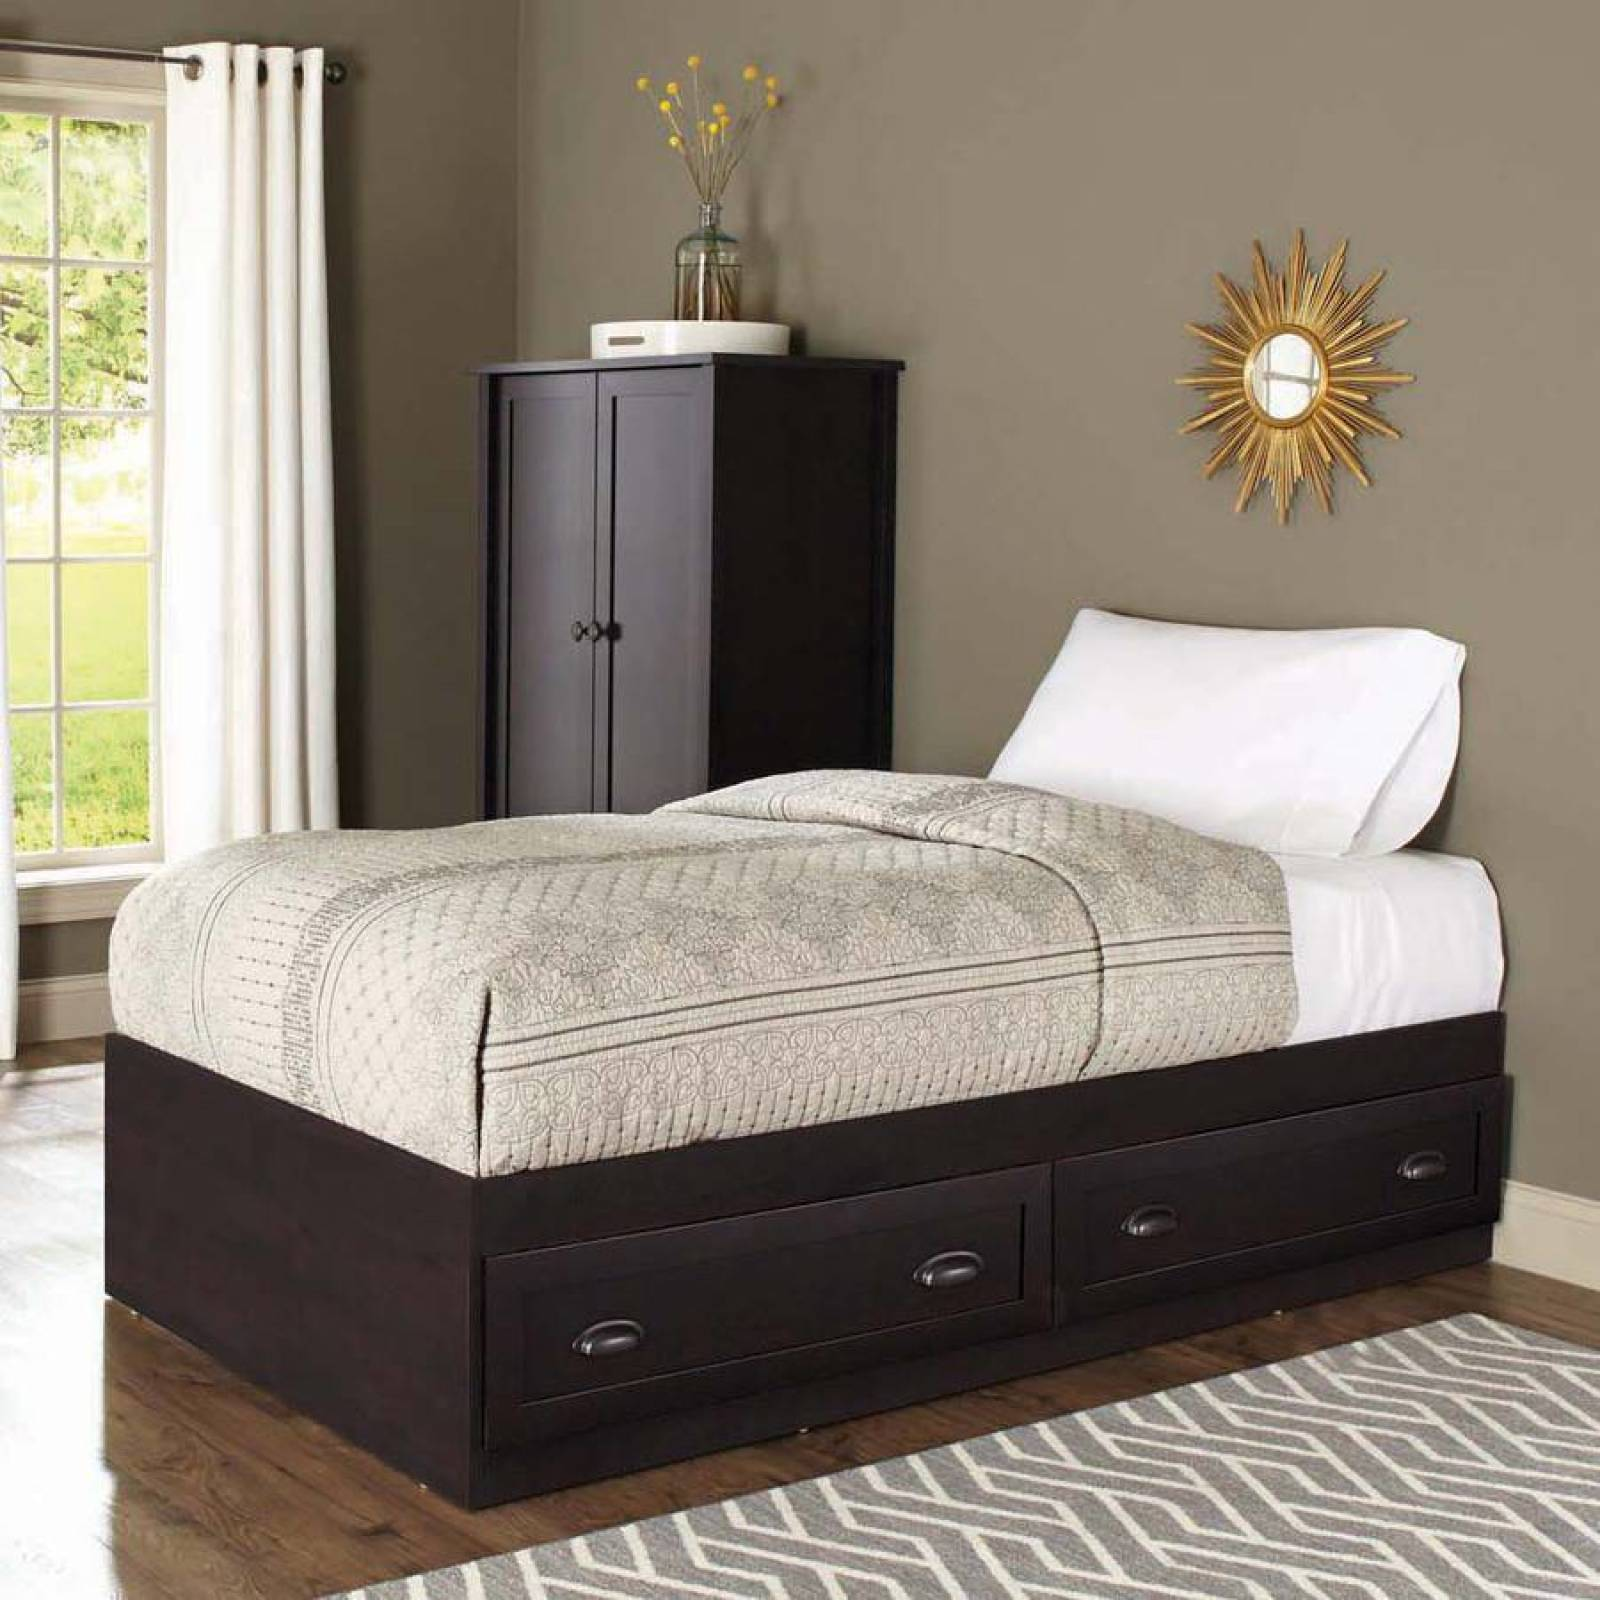 Wooden Twin Size Bed.Details About Twin Size Bed Base Mates Bed W Storage Draw Bedroom Furniture Wooden Guest Bed